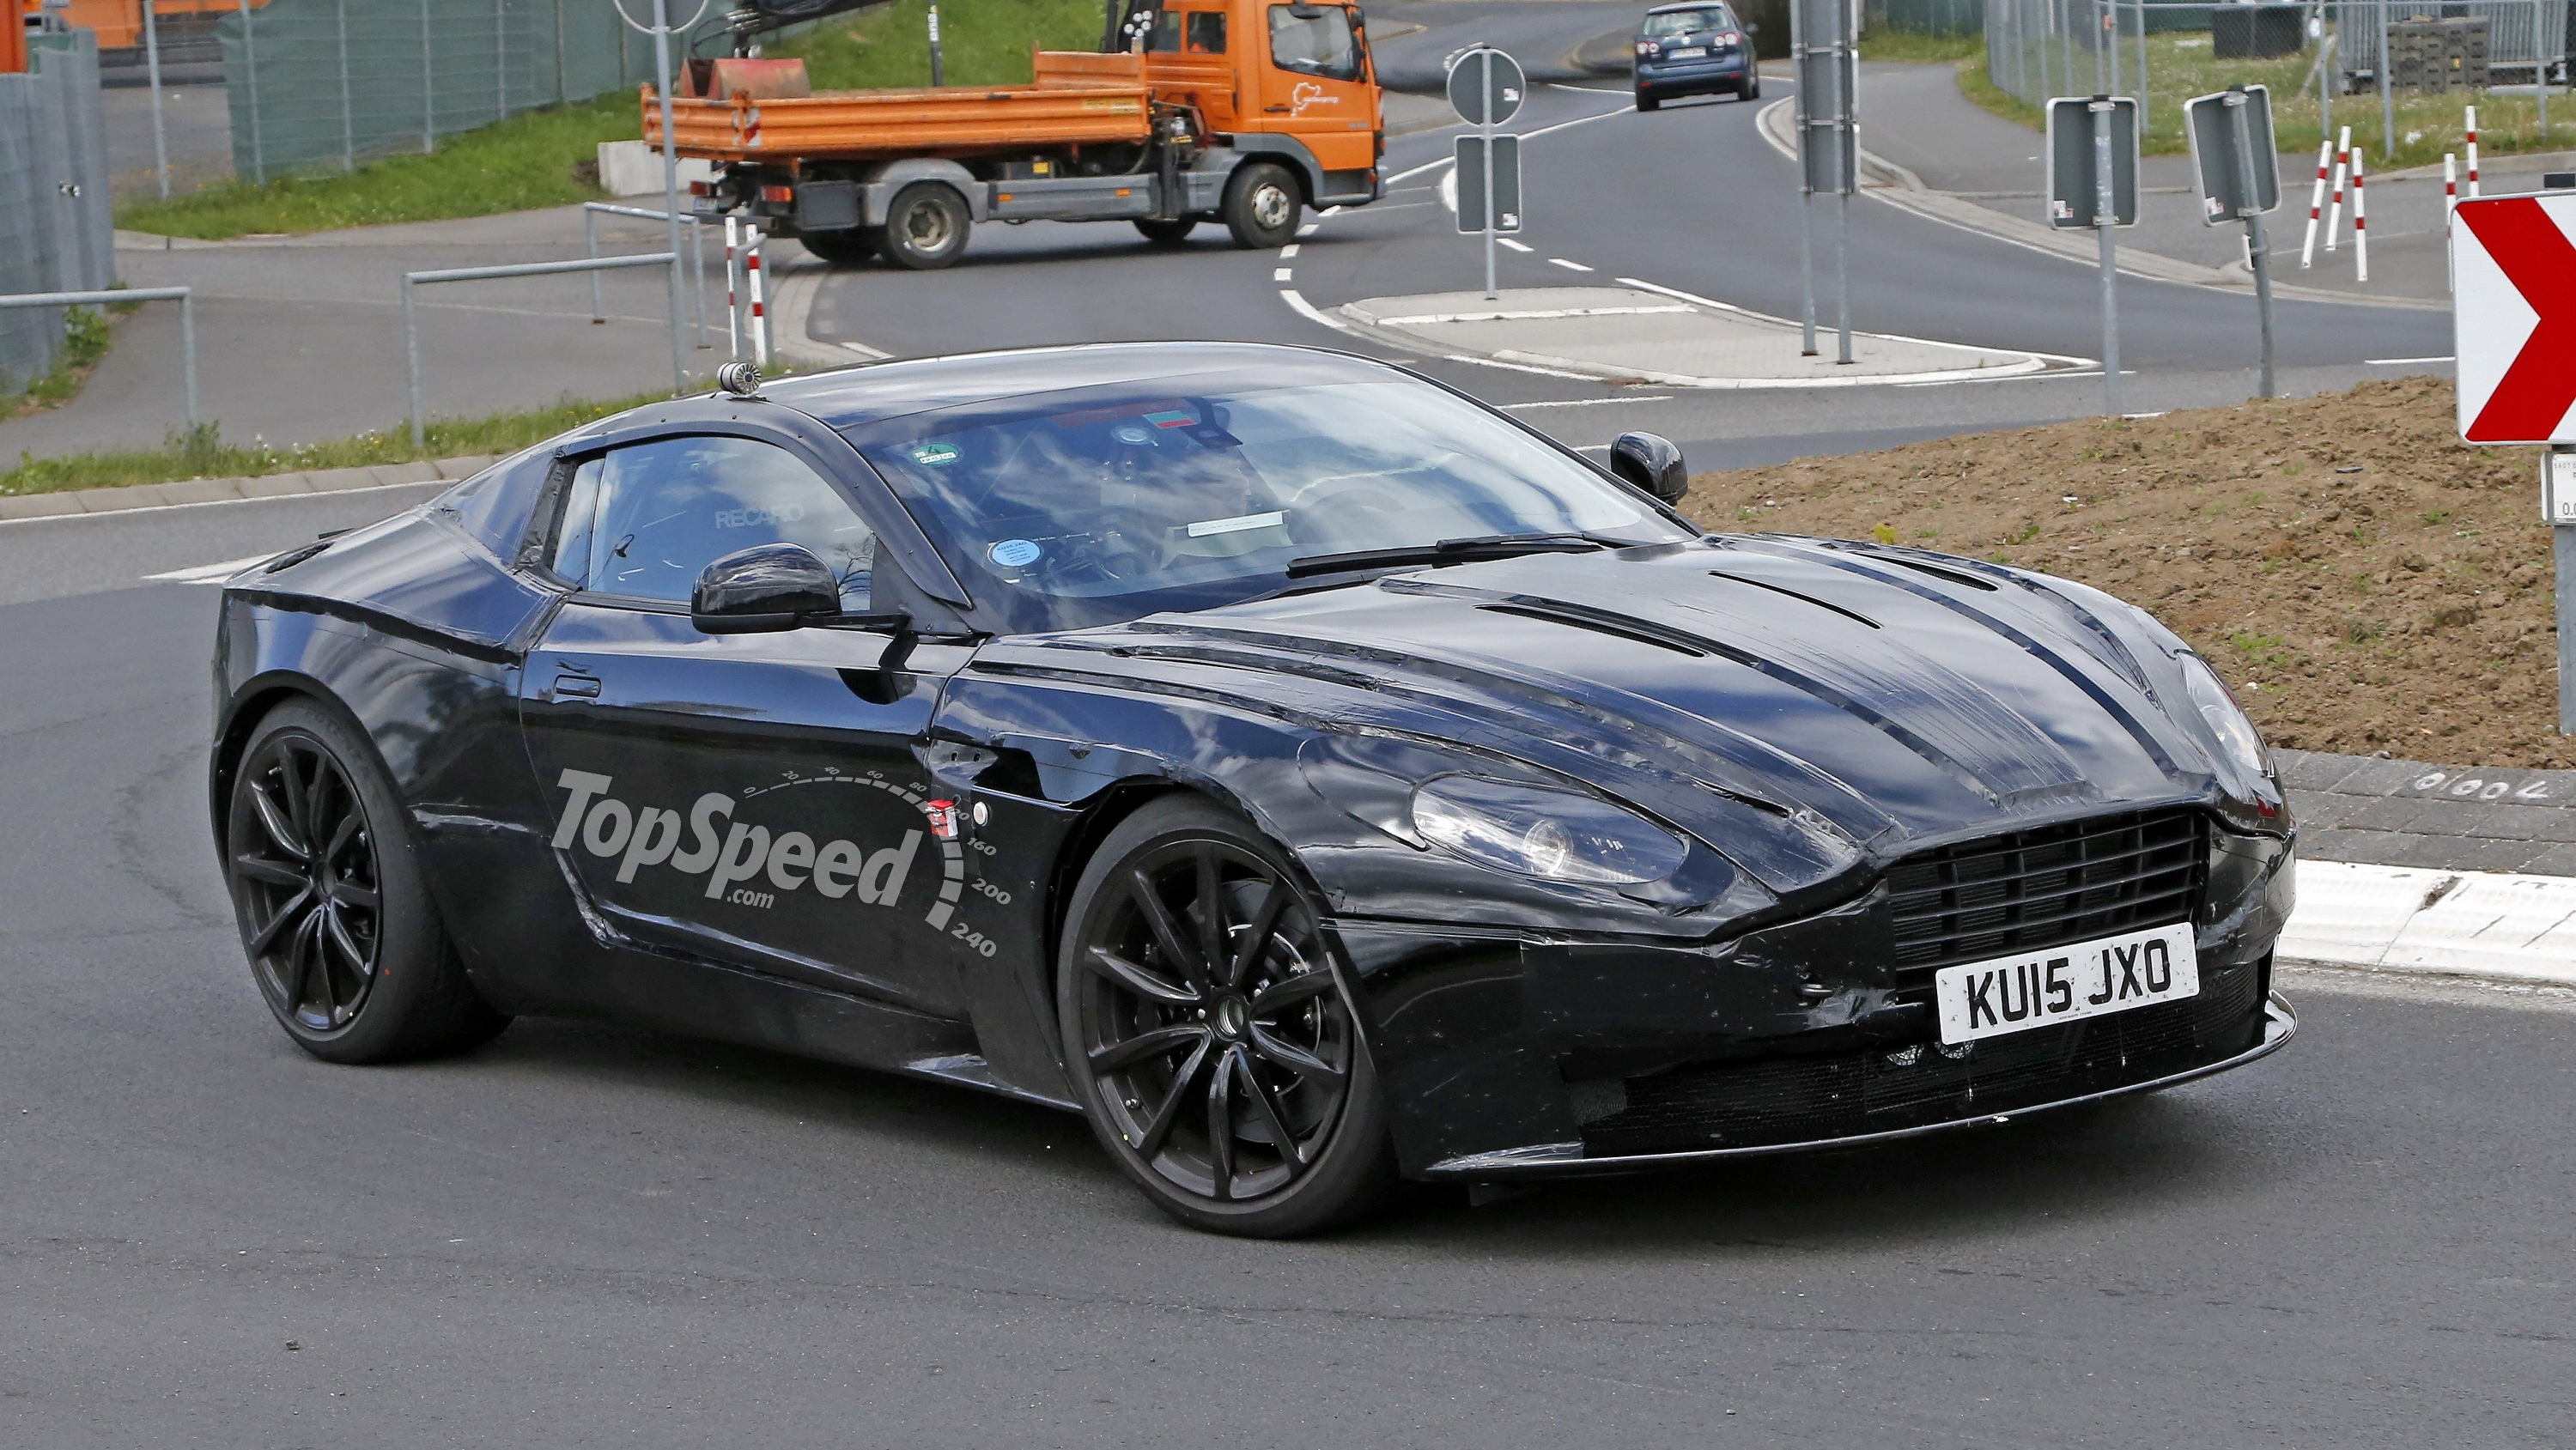 aston martin db11 looks even better in black spy shots pictures photos wallpapers top speed. Black Bedroom Furniture Sets. Home Design Ideas